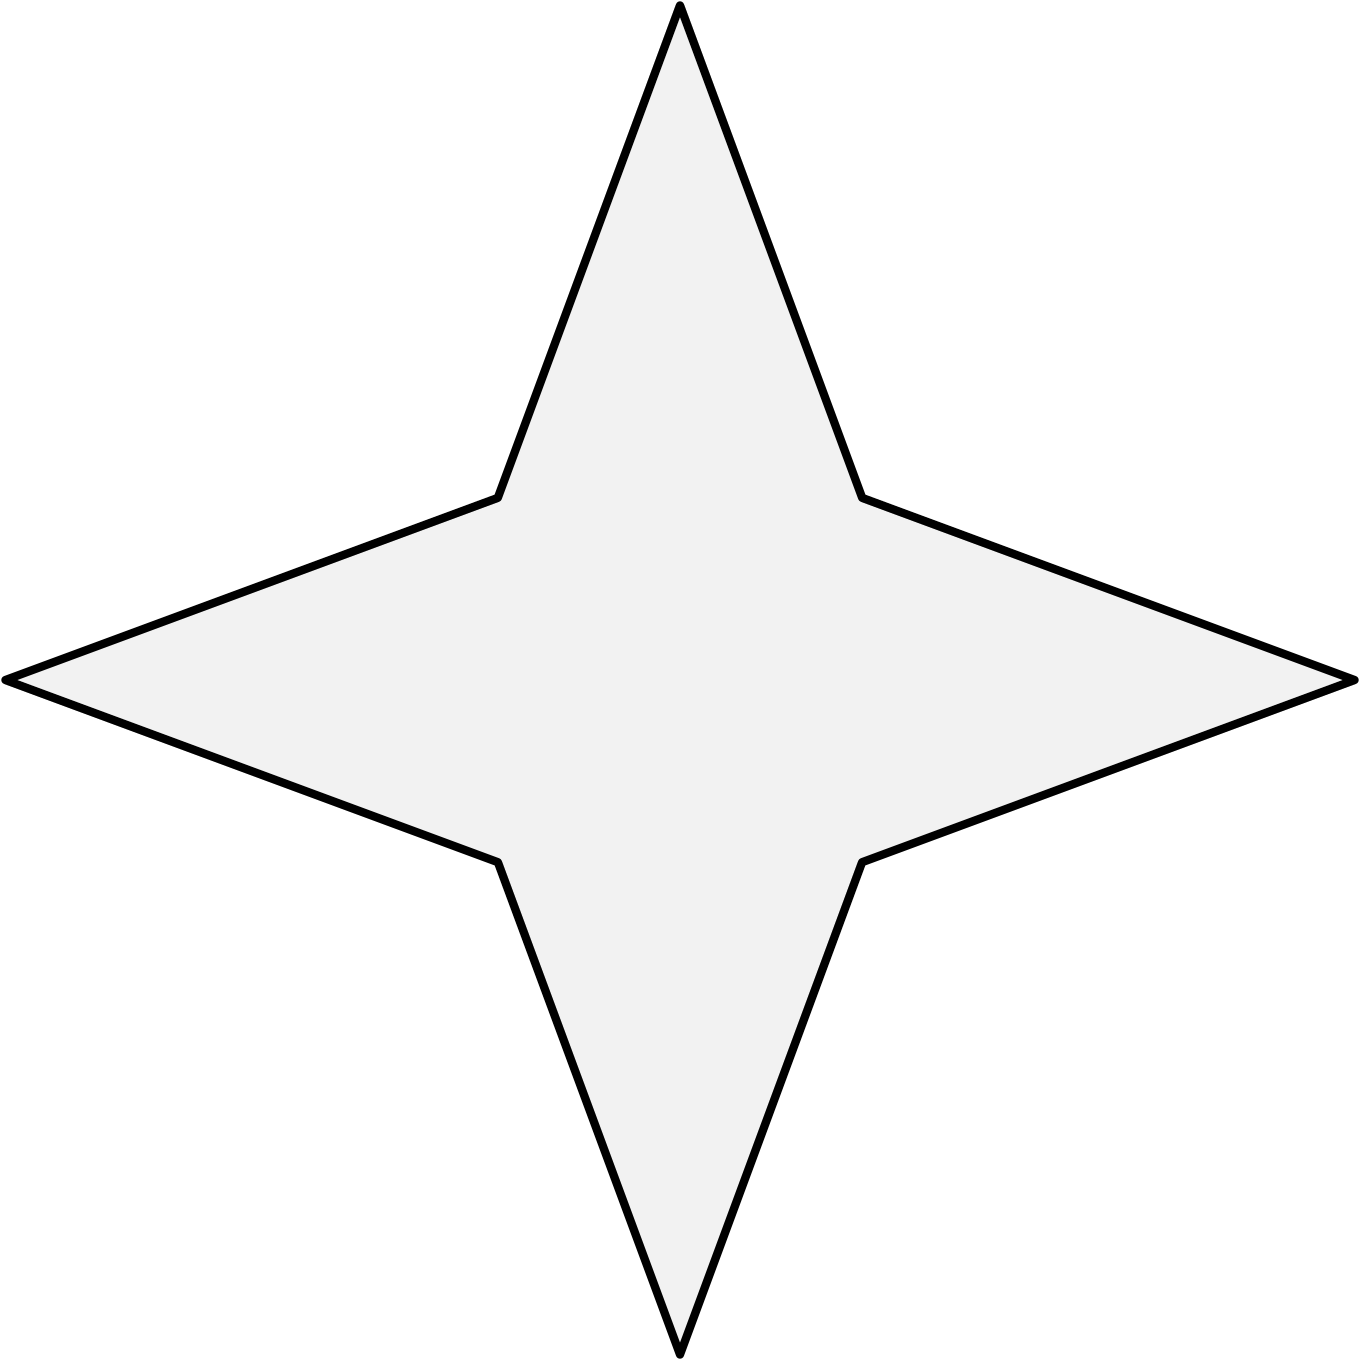 Pdf - Ninja Star Icon Png Clipart - Full Size Clipart ...